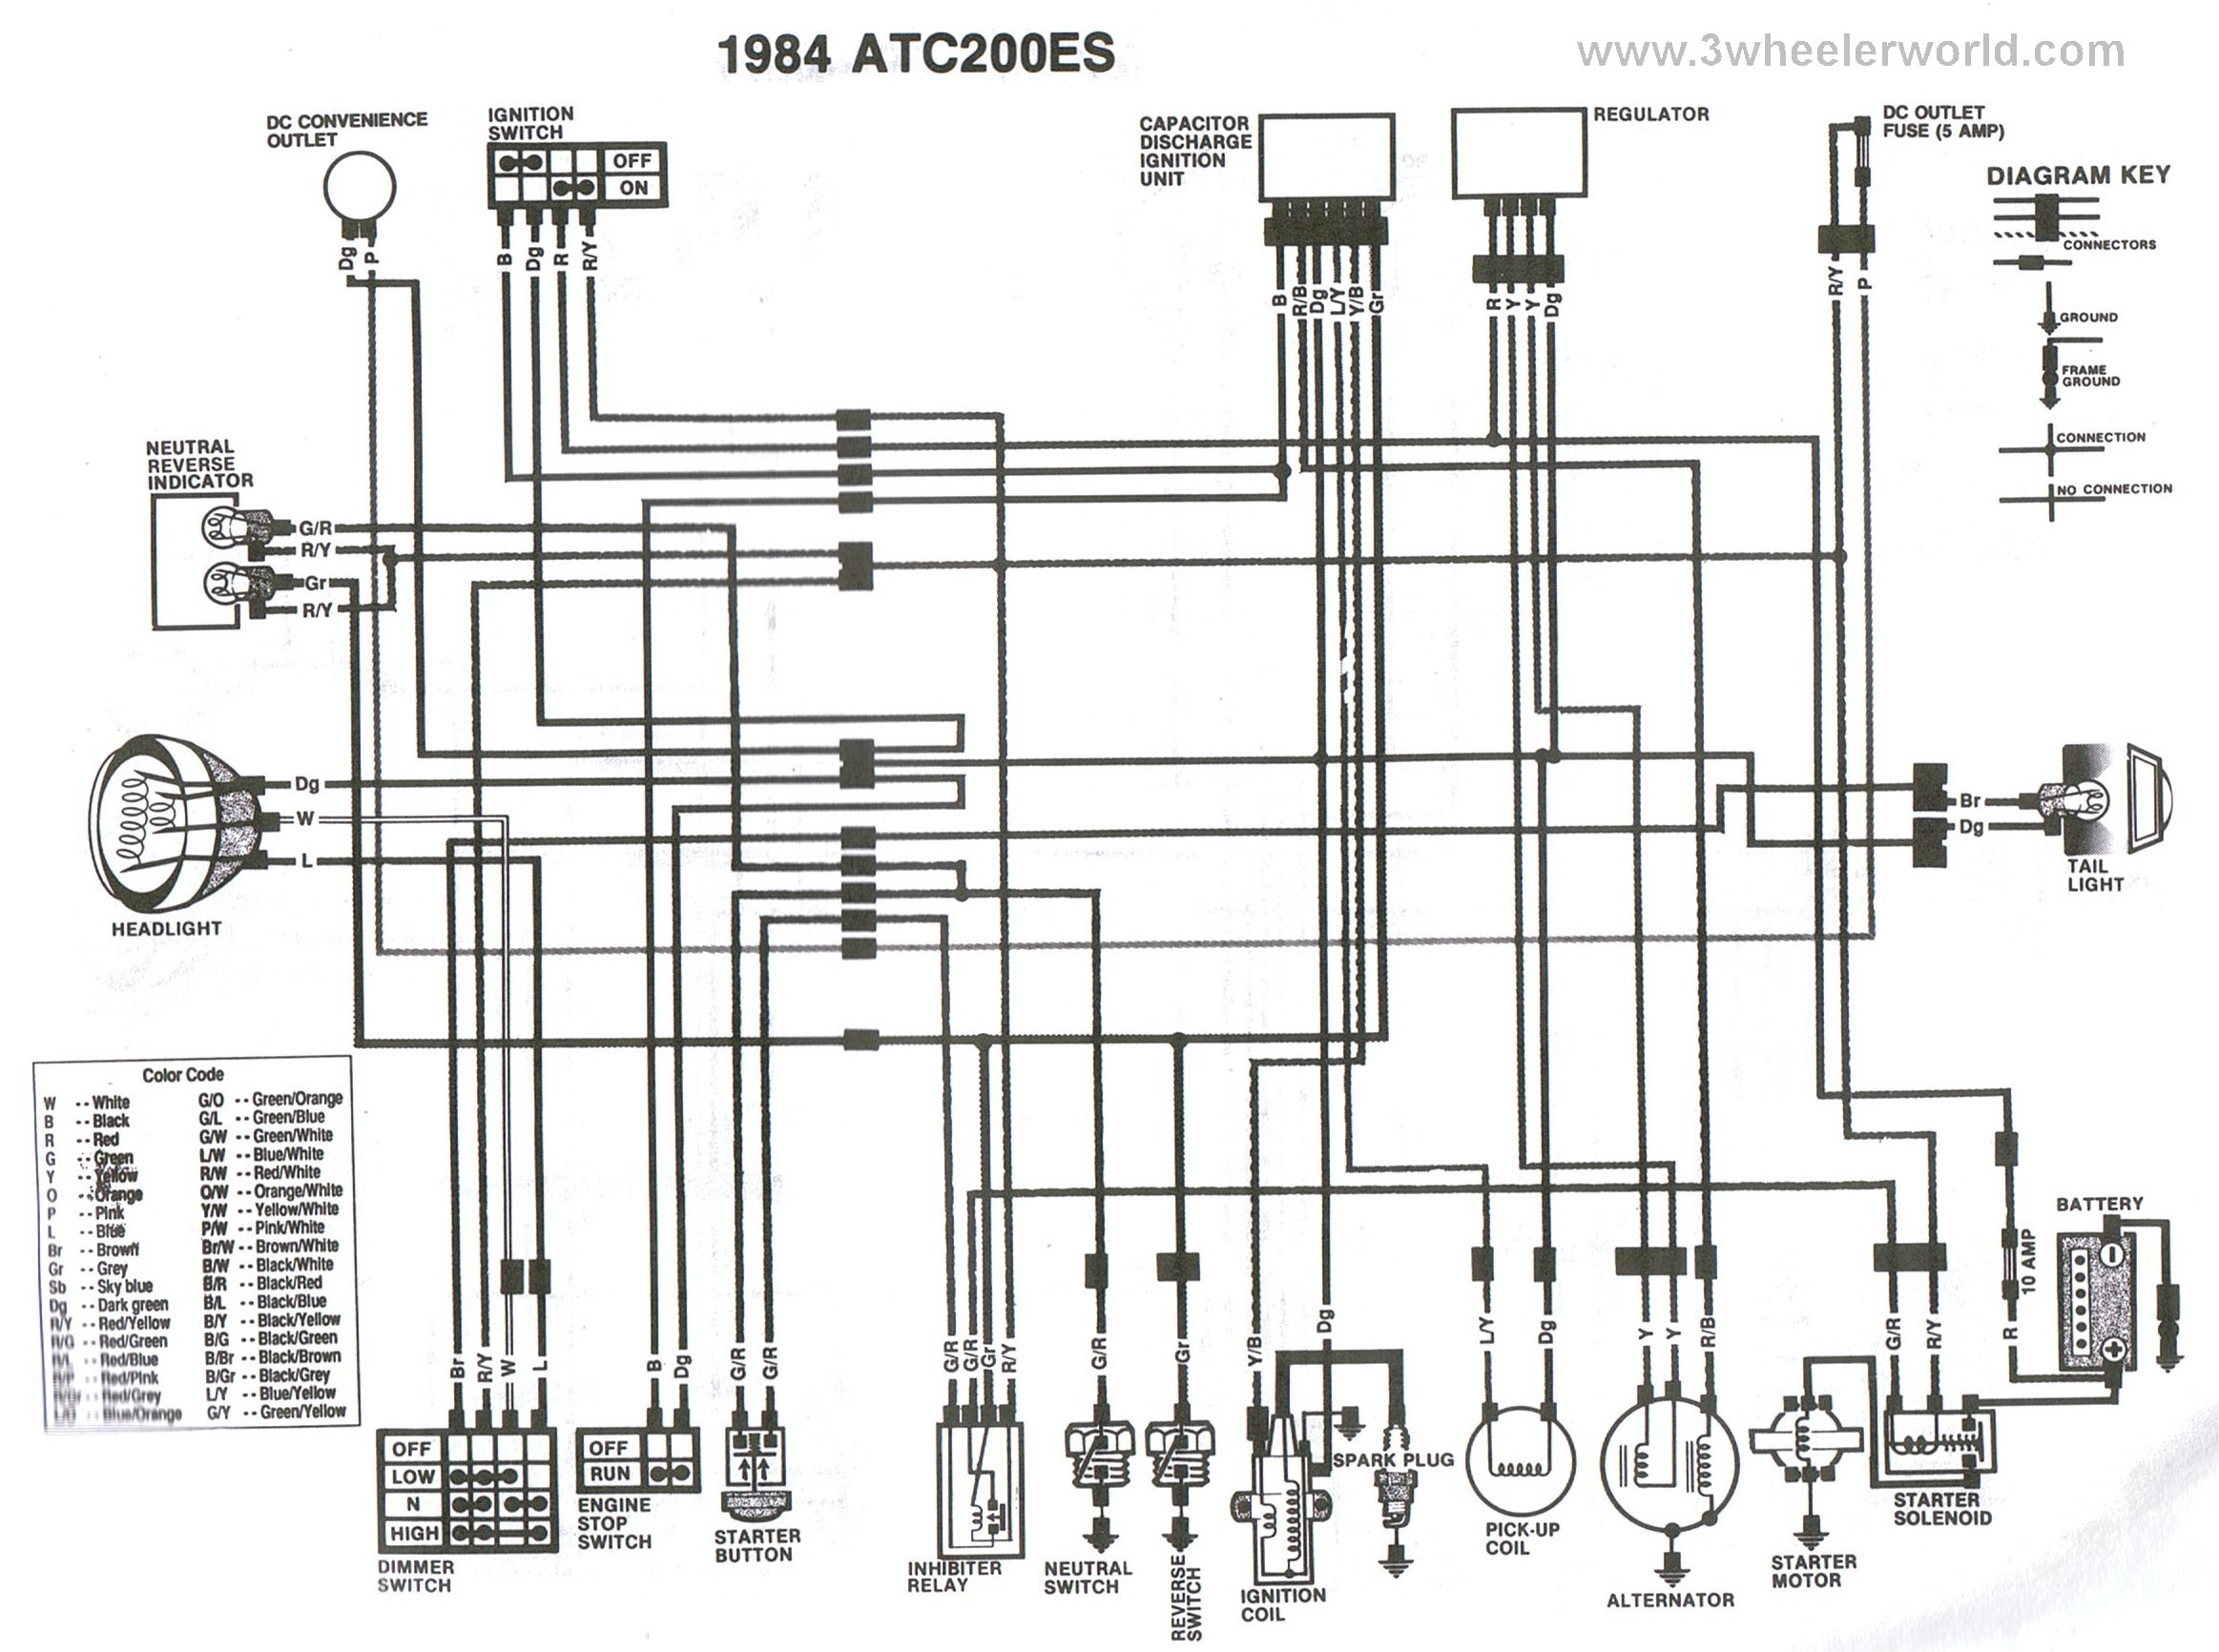 Wiring Diagram Honda Big Red : Wheeler world tech help honda wiring diagrams